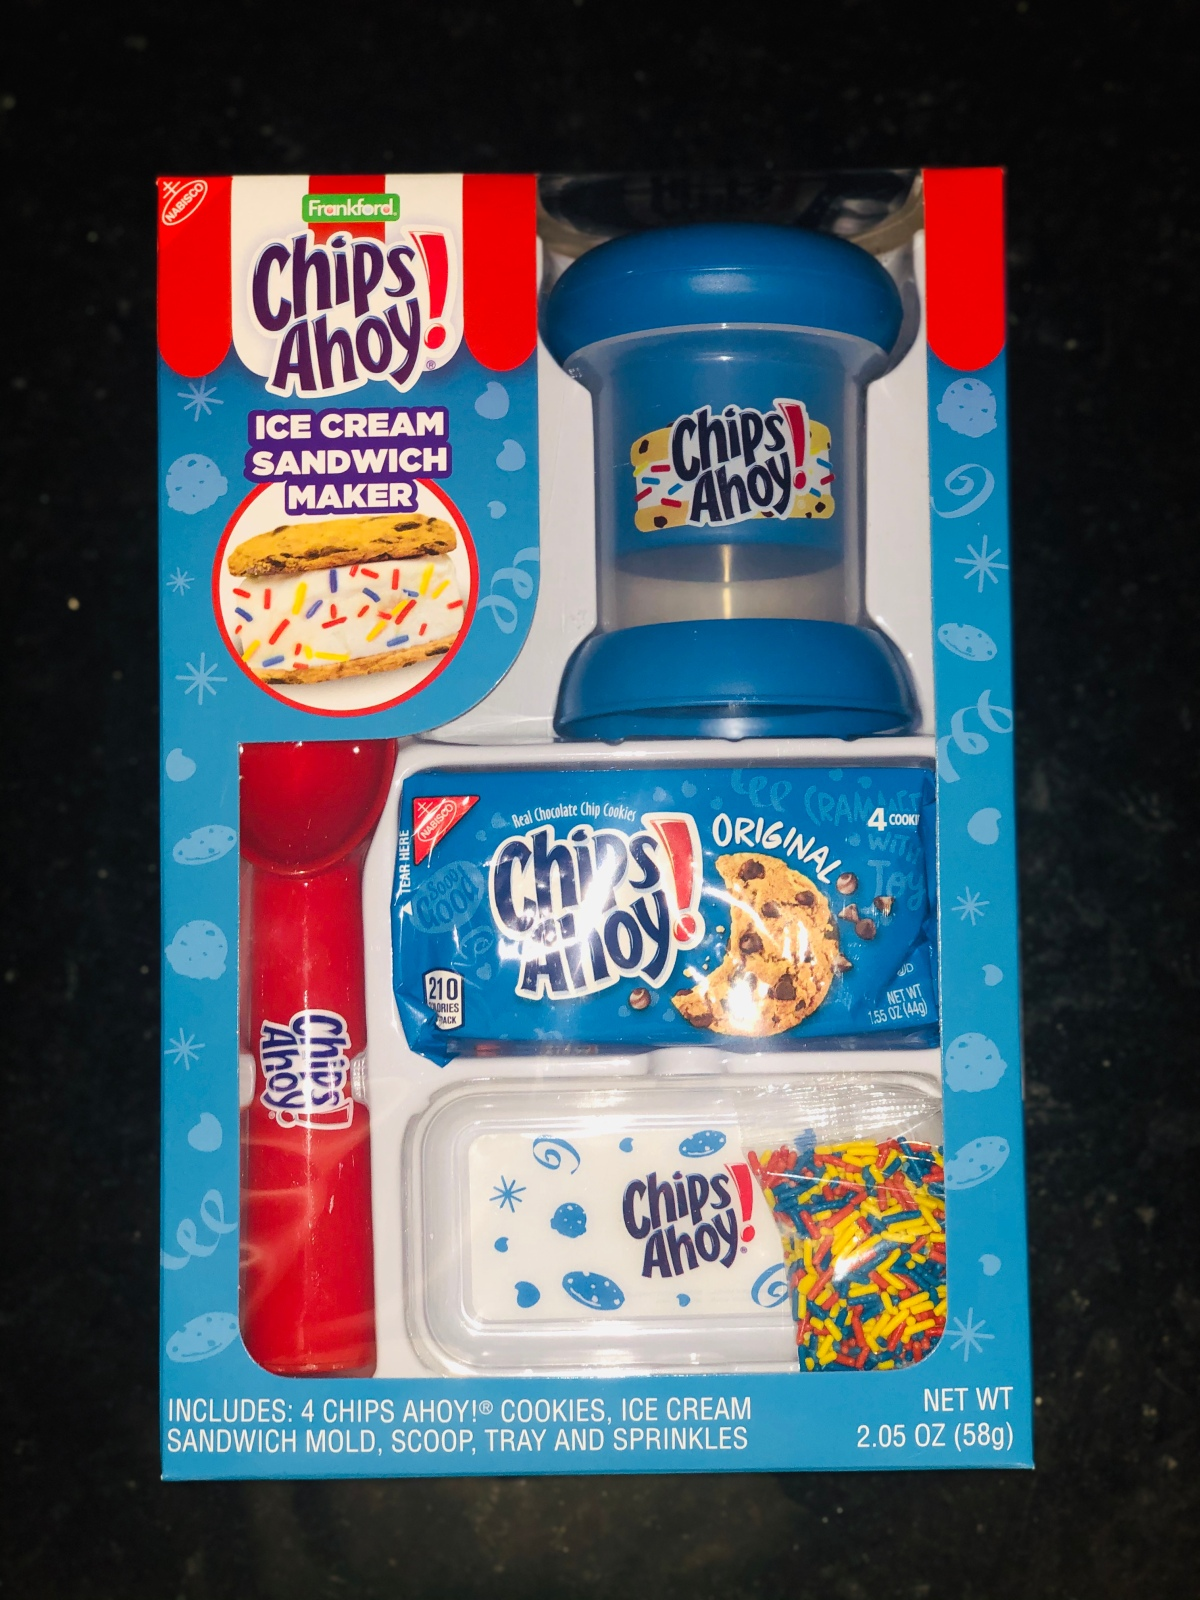 The Inside Scoop on Chips Ahoy's Ice Cream Sandwich Maker